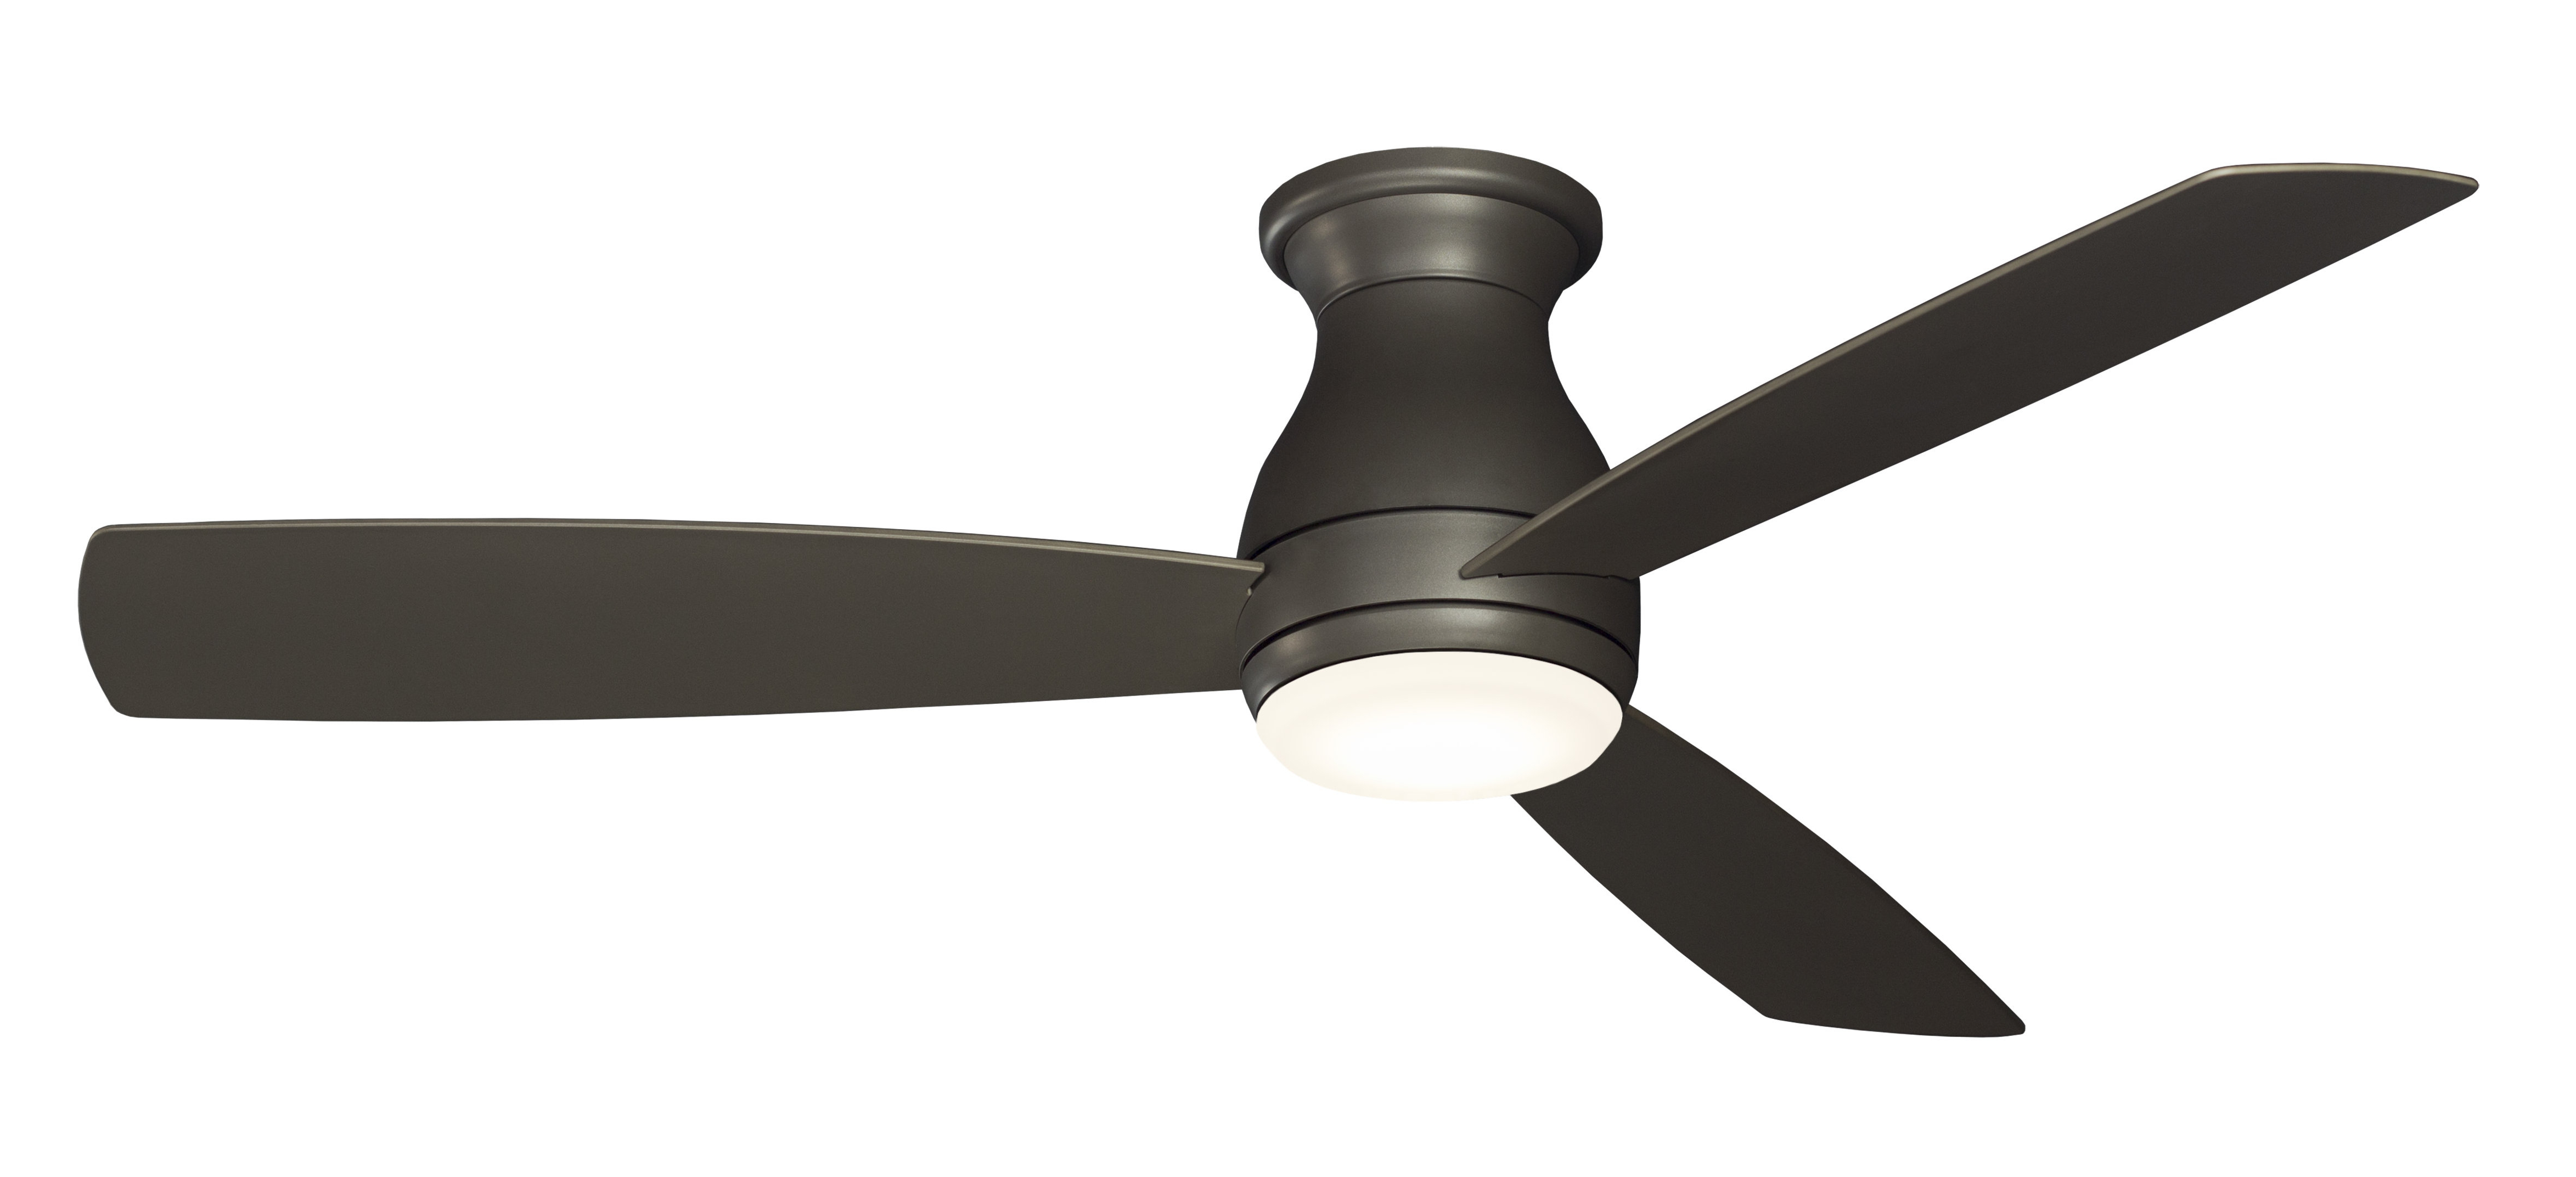 "2020 Dennis 3 Blade Ceiling Fans In 52"" Hugh 3 Blade Led Ceiling Fan (View 2 of 20)"